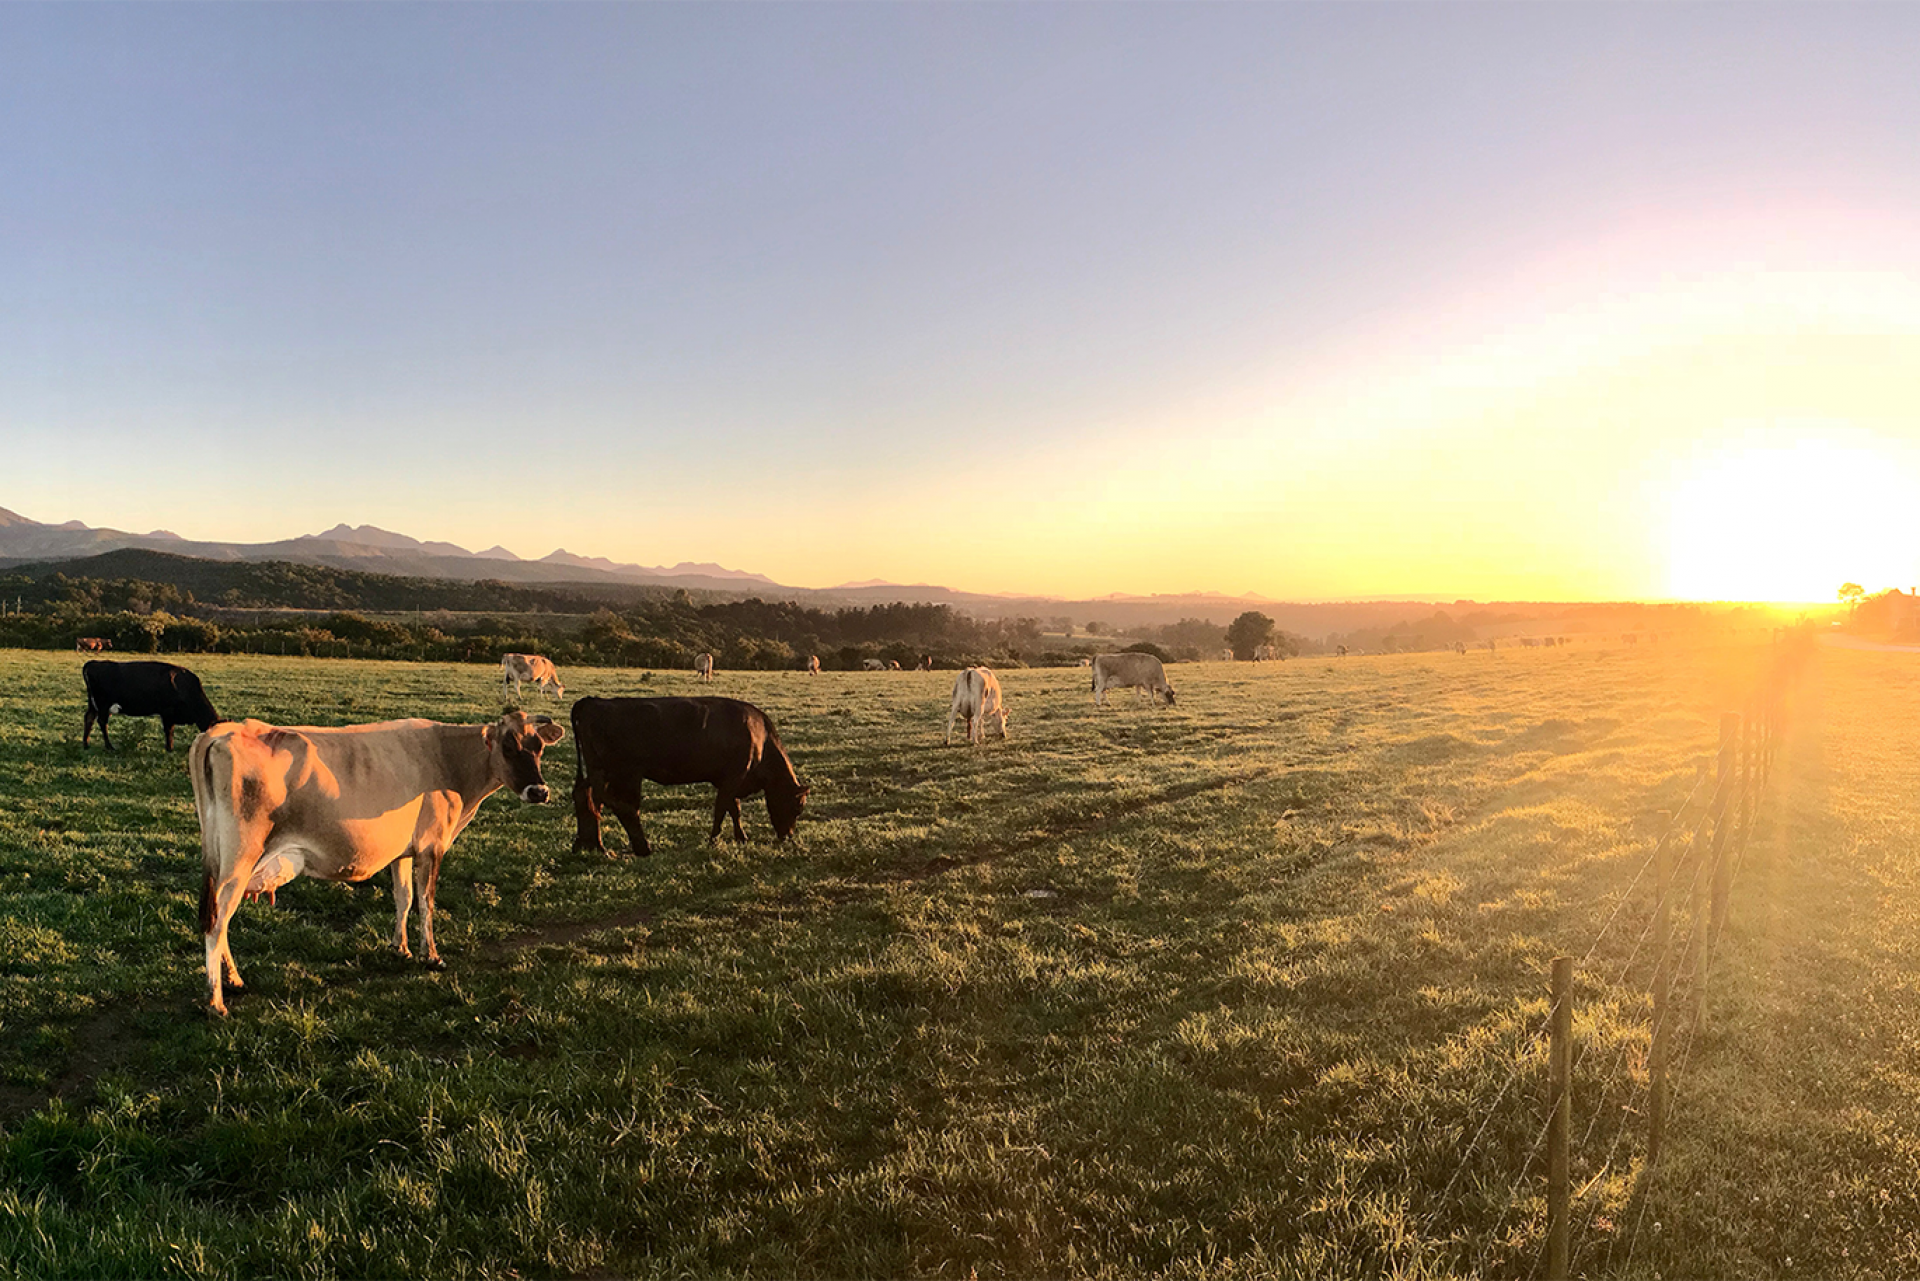 Cows in pasture with sun setting over hills in the background